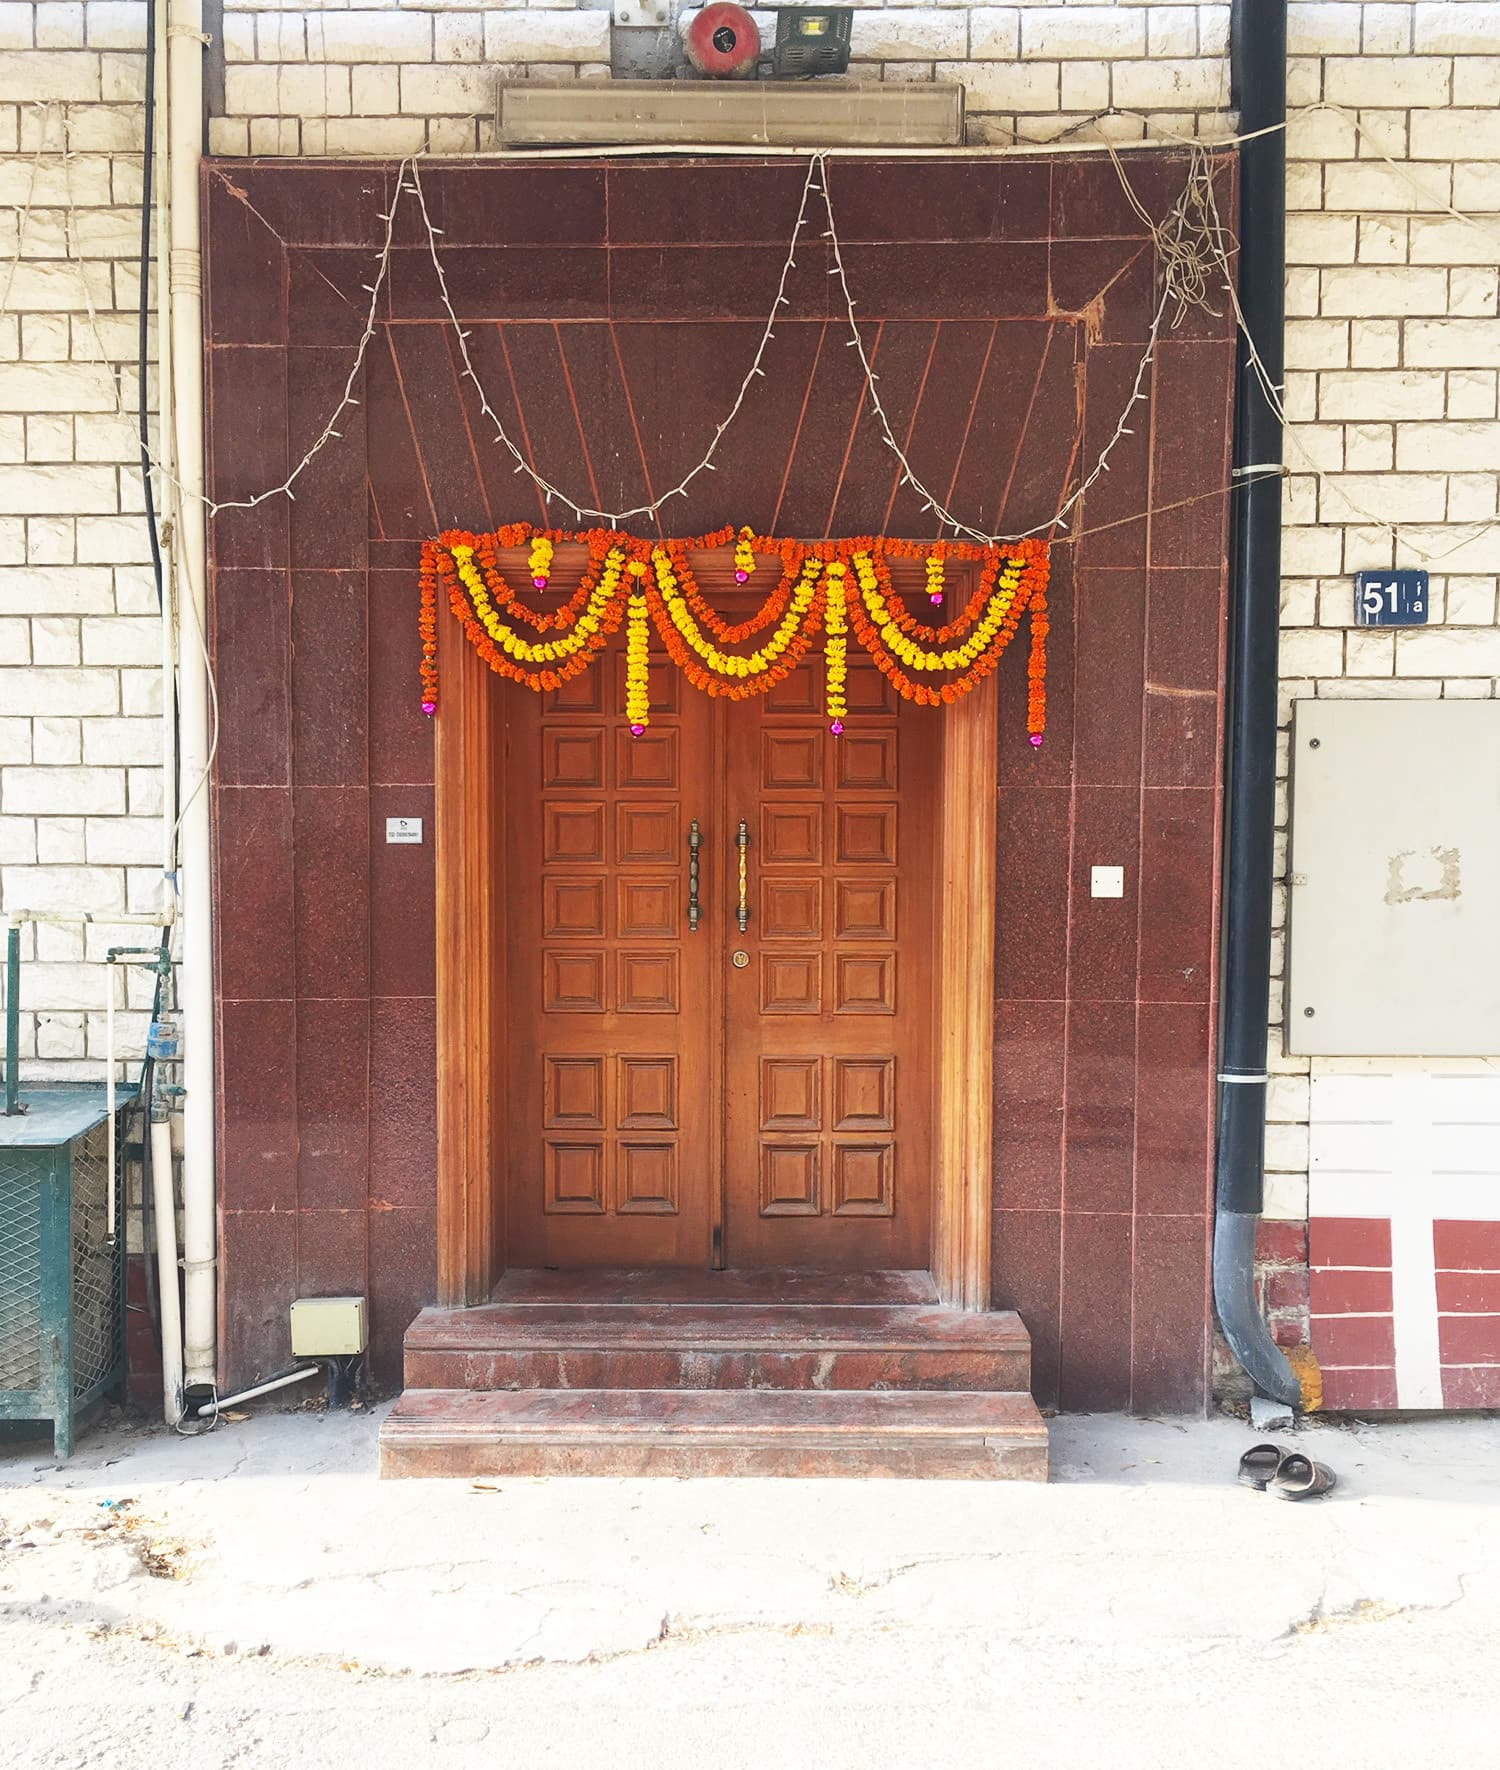 The Hindi Lane is home to many members of the Hindu and Sikh community.